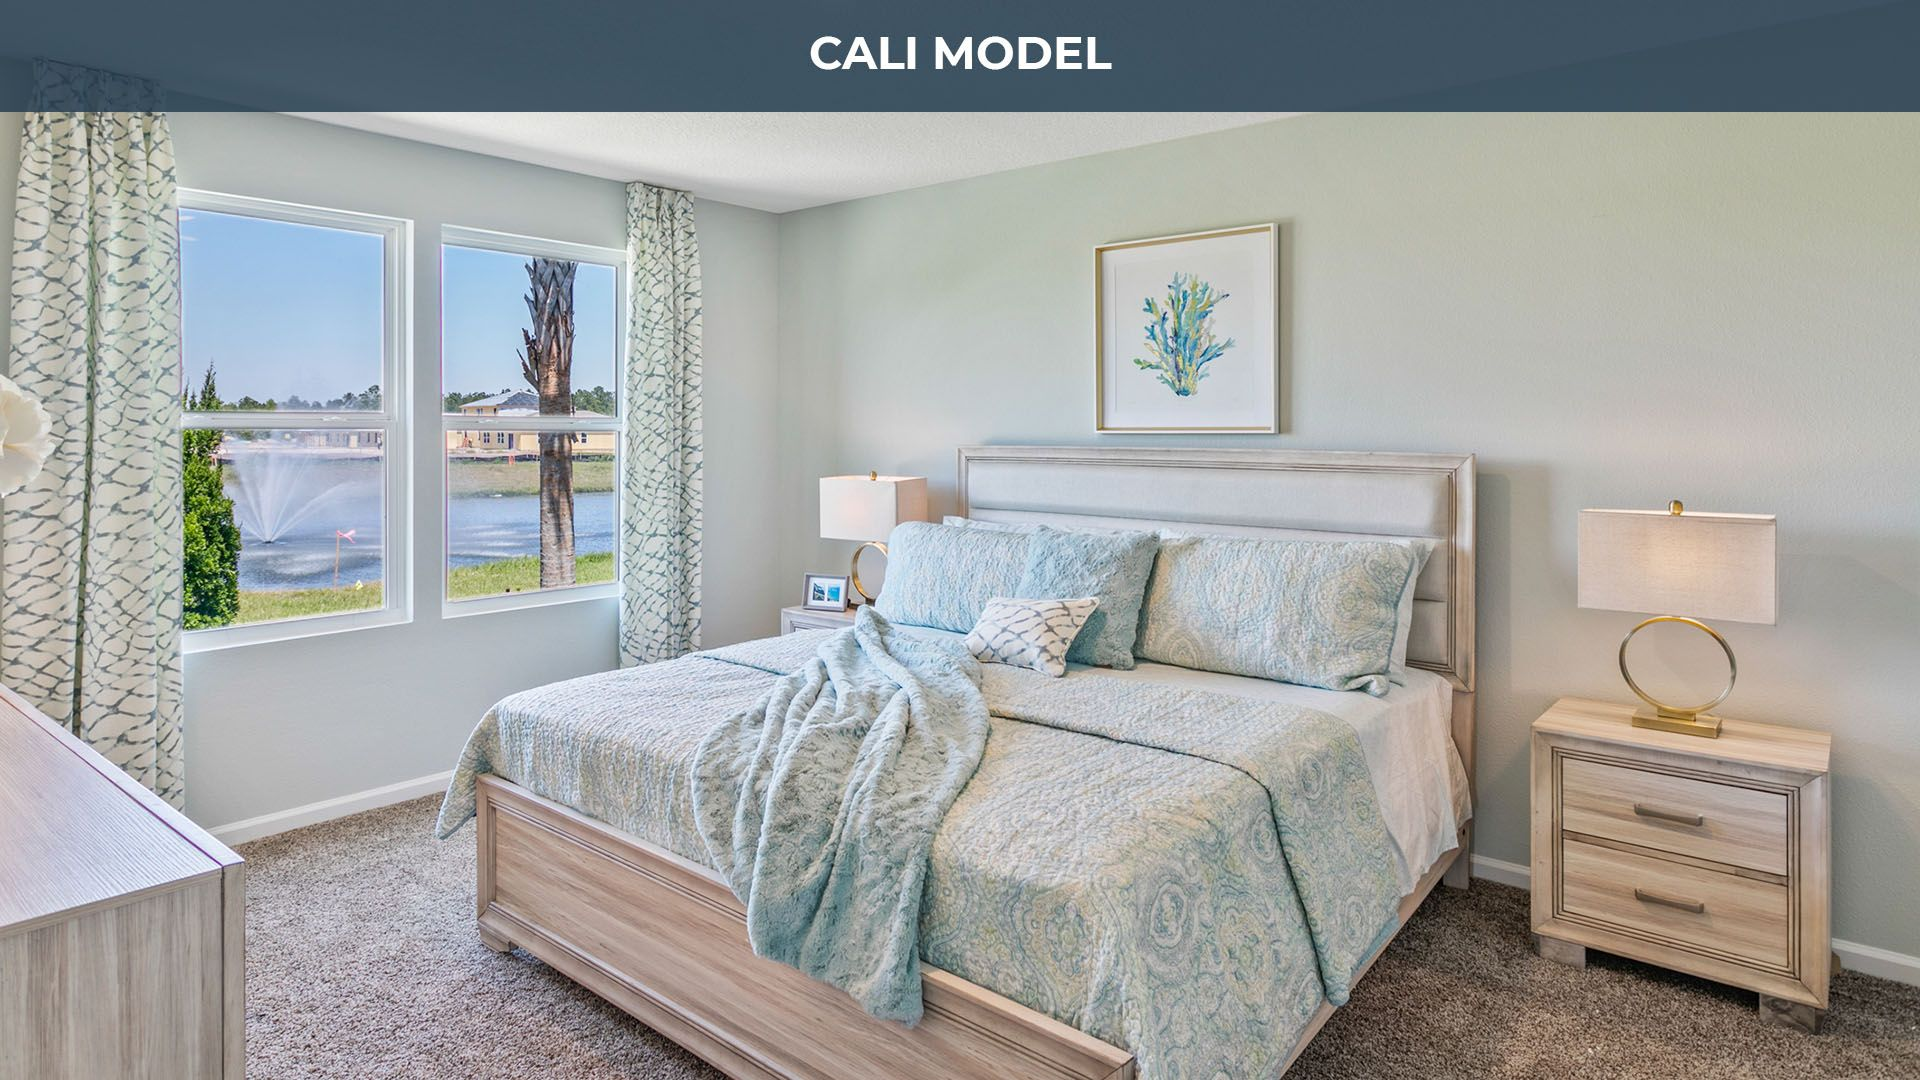 Bedroom featured in the CALI By D.R. Horton in Daytona Beach, FL